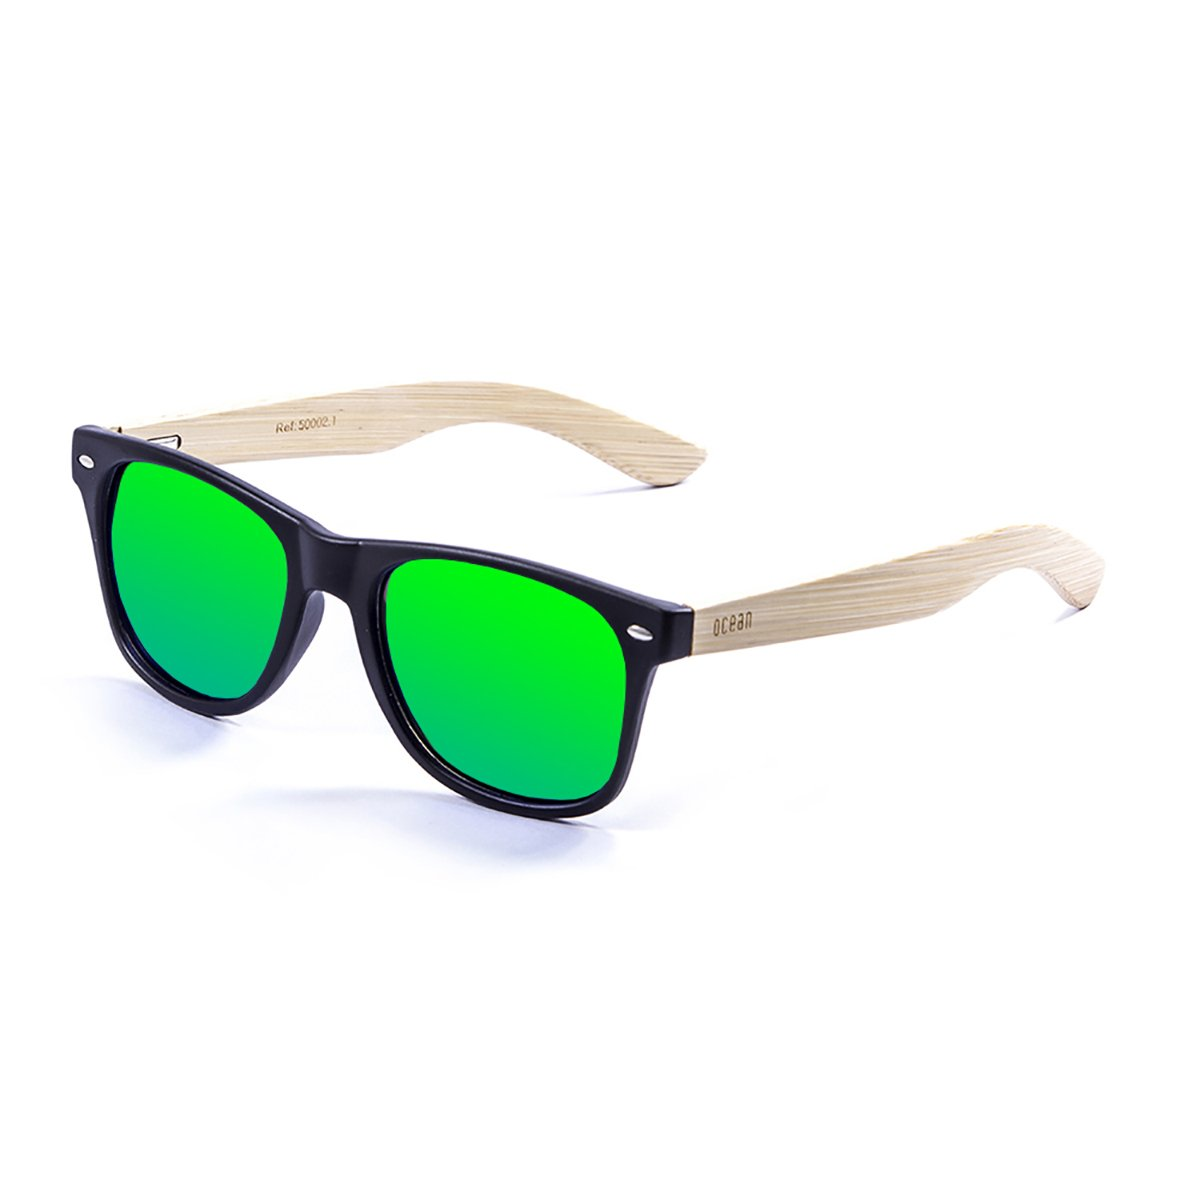 OCEAN SUNGLASSES Beach Lunettes de Soleil Bamboo Dark Frame/Wood Natural Arms/Revo Green Lens h0h6fw29